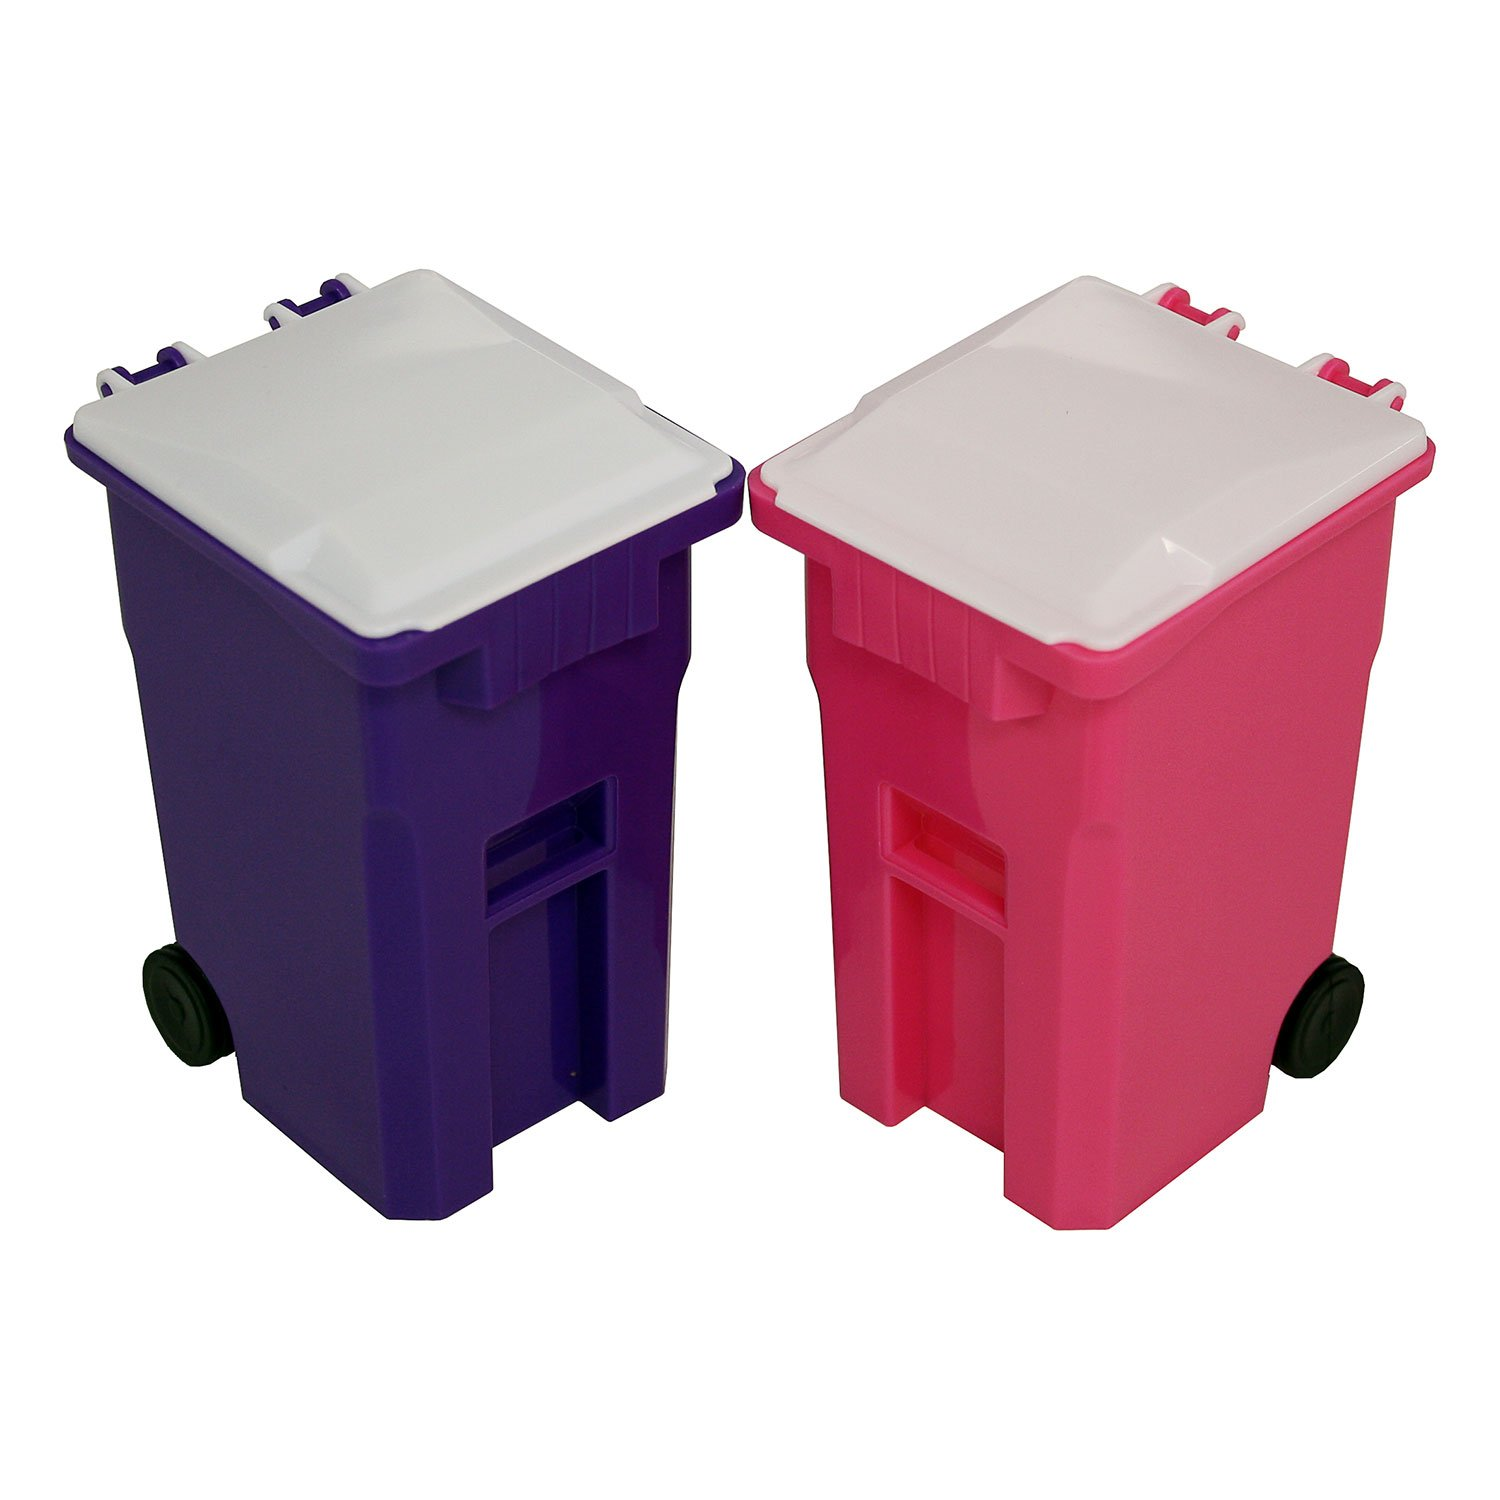 Thornton's Office Supplies Mini Curbside Wrestling Toy Garbage Trash Can and Recycle Can Set Office Desk Pencil Cup Holder (Pink/Purple)